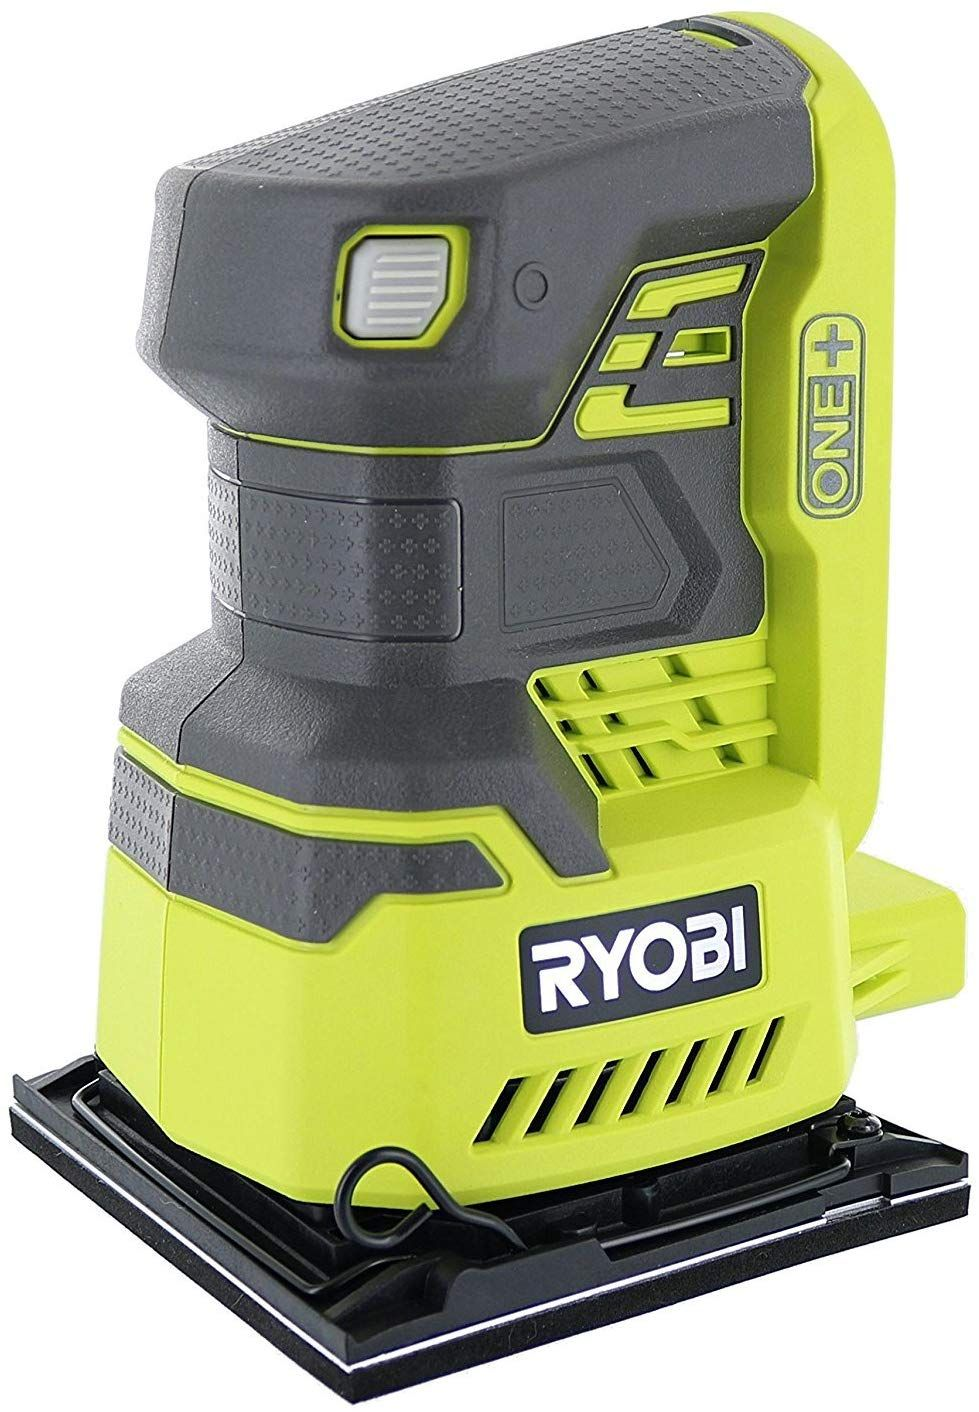 Ryobi P440 One 18v Lithium Ion 12 000 Rpm 1 4 Sheet Palm Sander W Onboard Dust Bag And Included Sanding Pads Battery Not Included Power Tool Only Sheet Sander Best Random